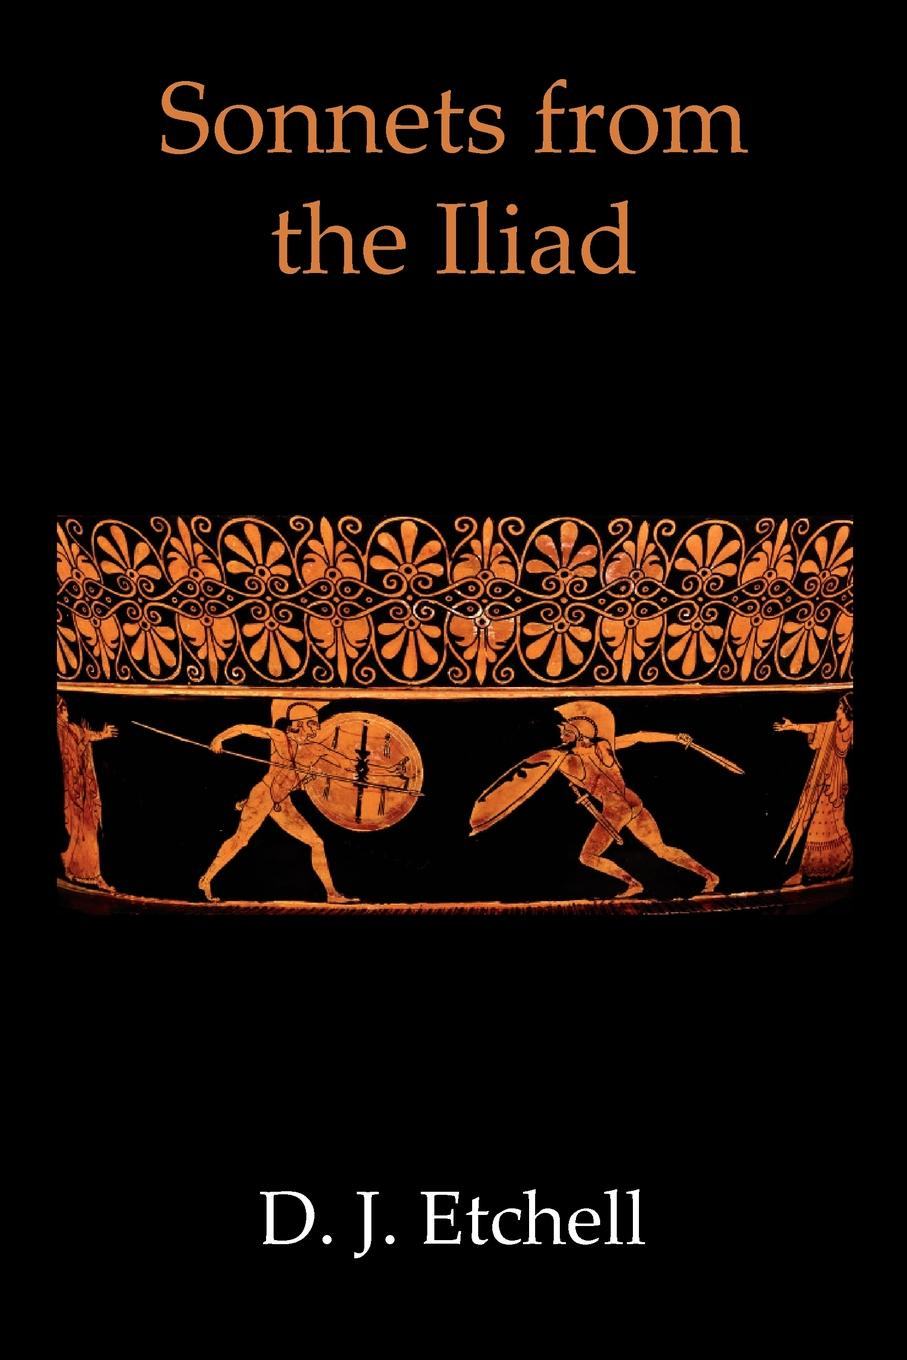 D. J. Etchell Sonnets from the Iliad